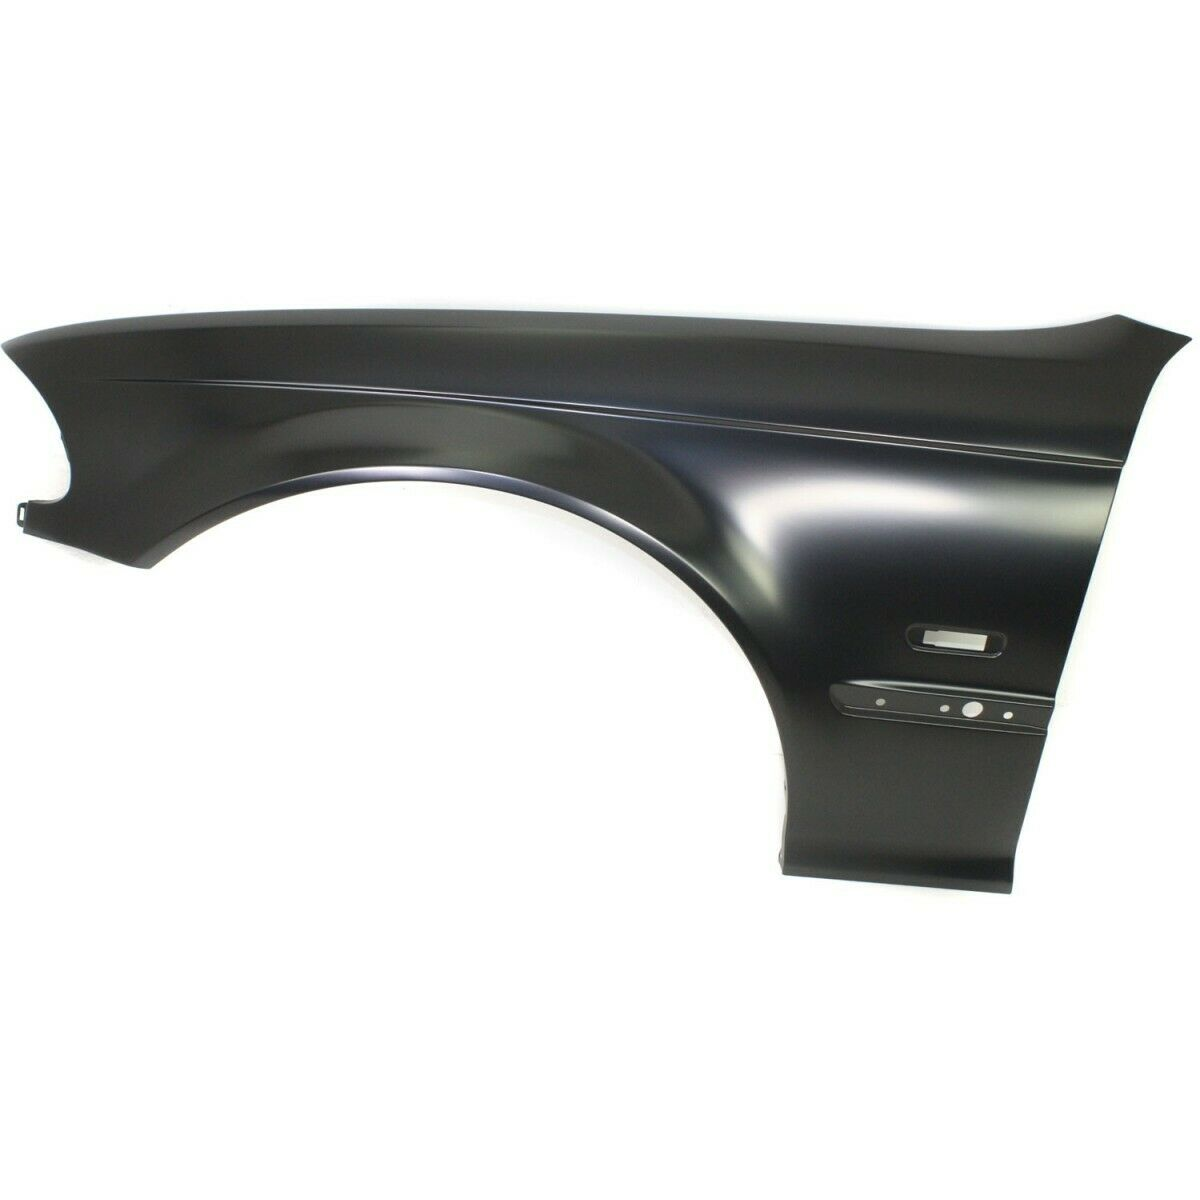 1999-2001 BMW 3-Series Sedan/Wagon Fender